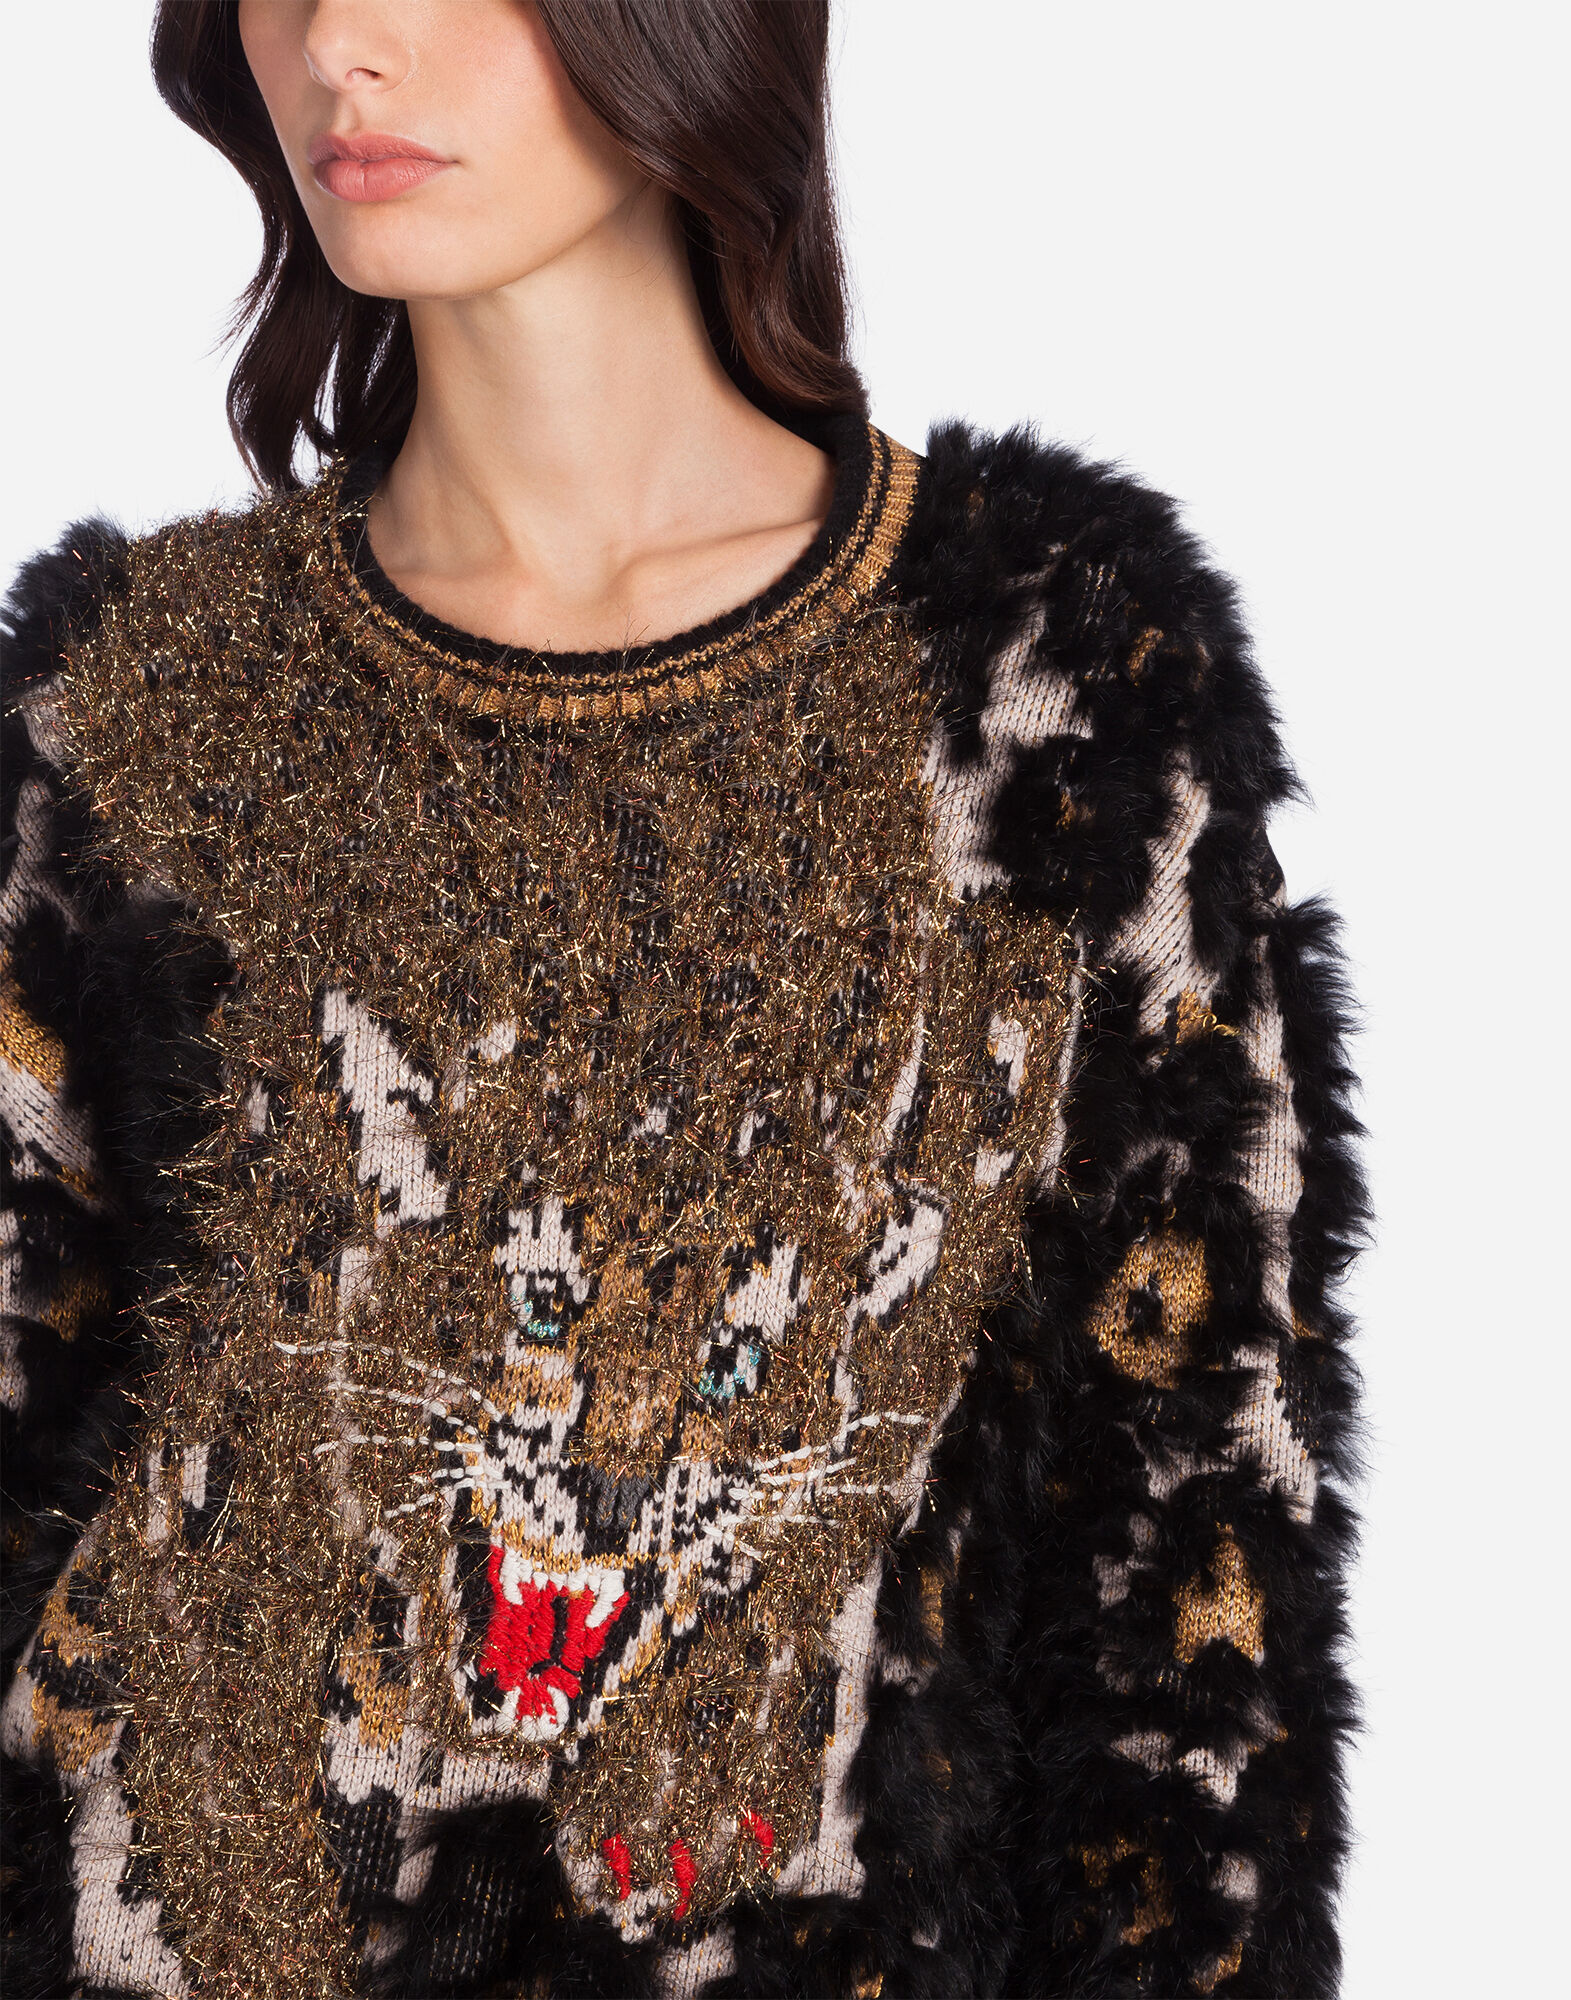 WOOL SWEATER WITH LAPIN DETAILS